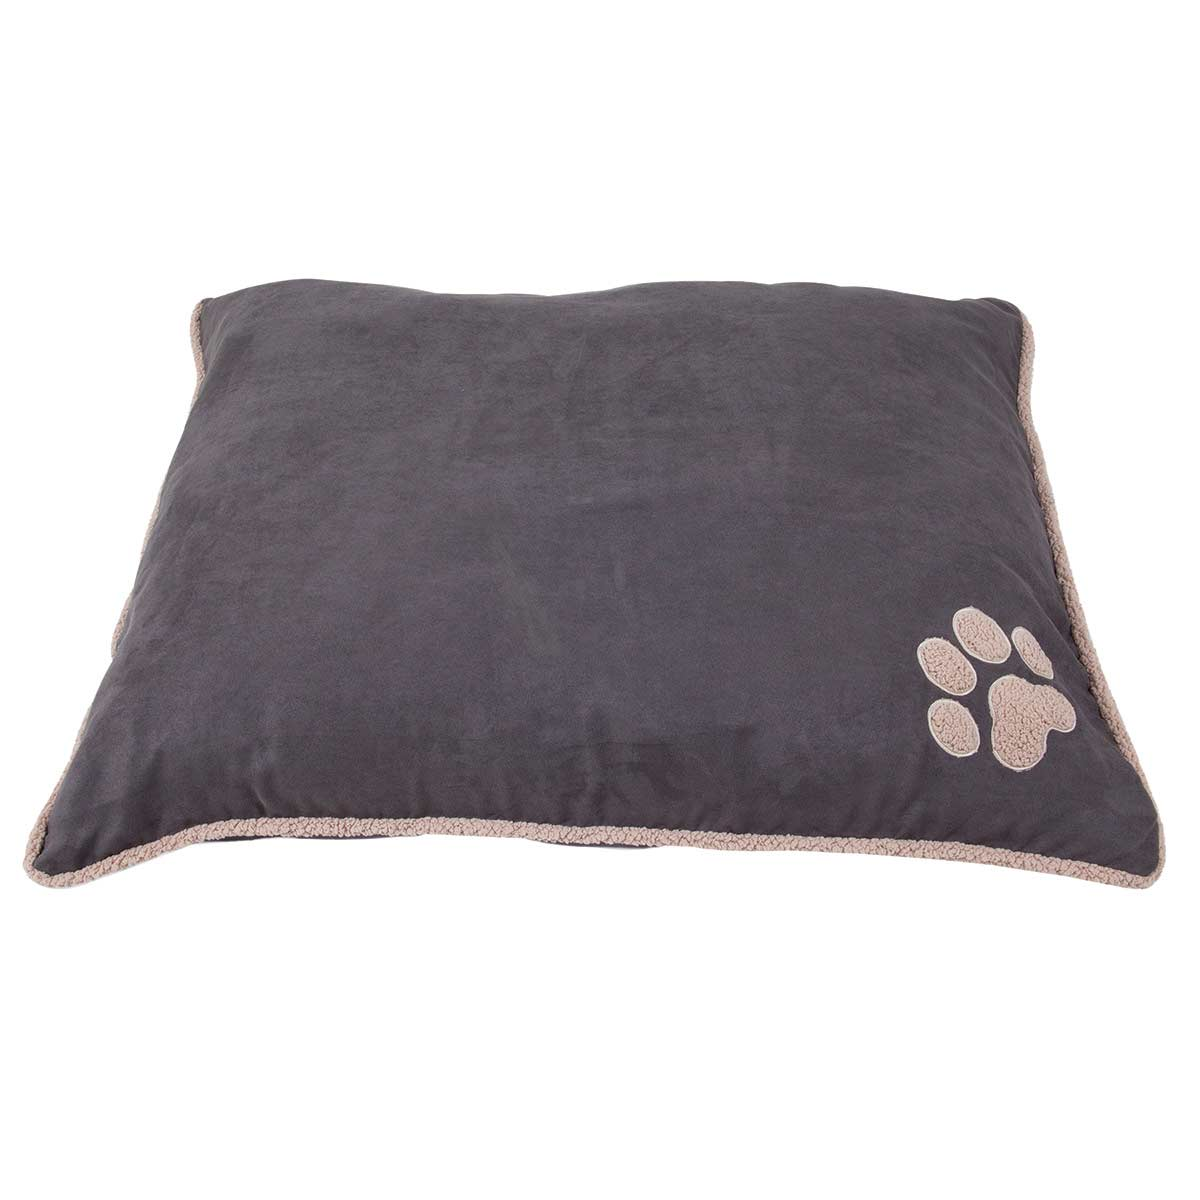 Aspen Pet Shearling Edge Pillow Bed Gray - 27 inches by 36 inches